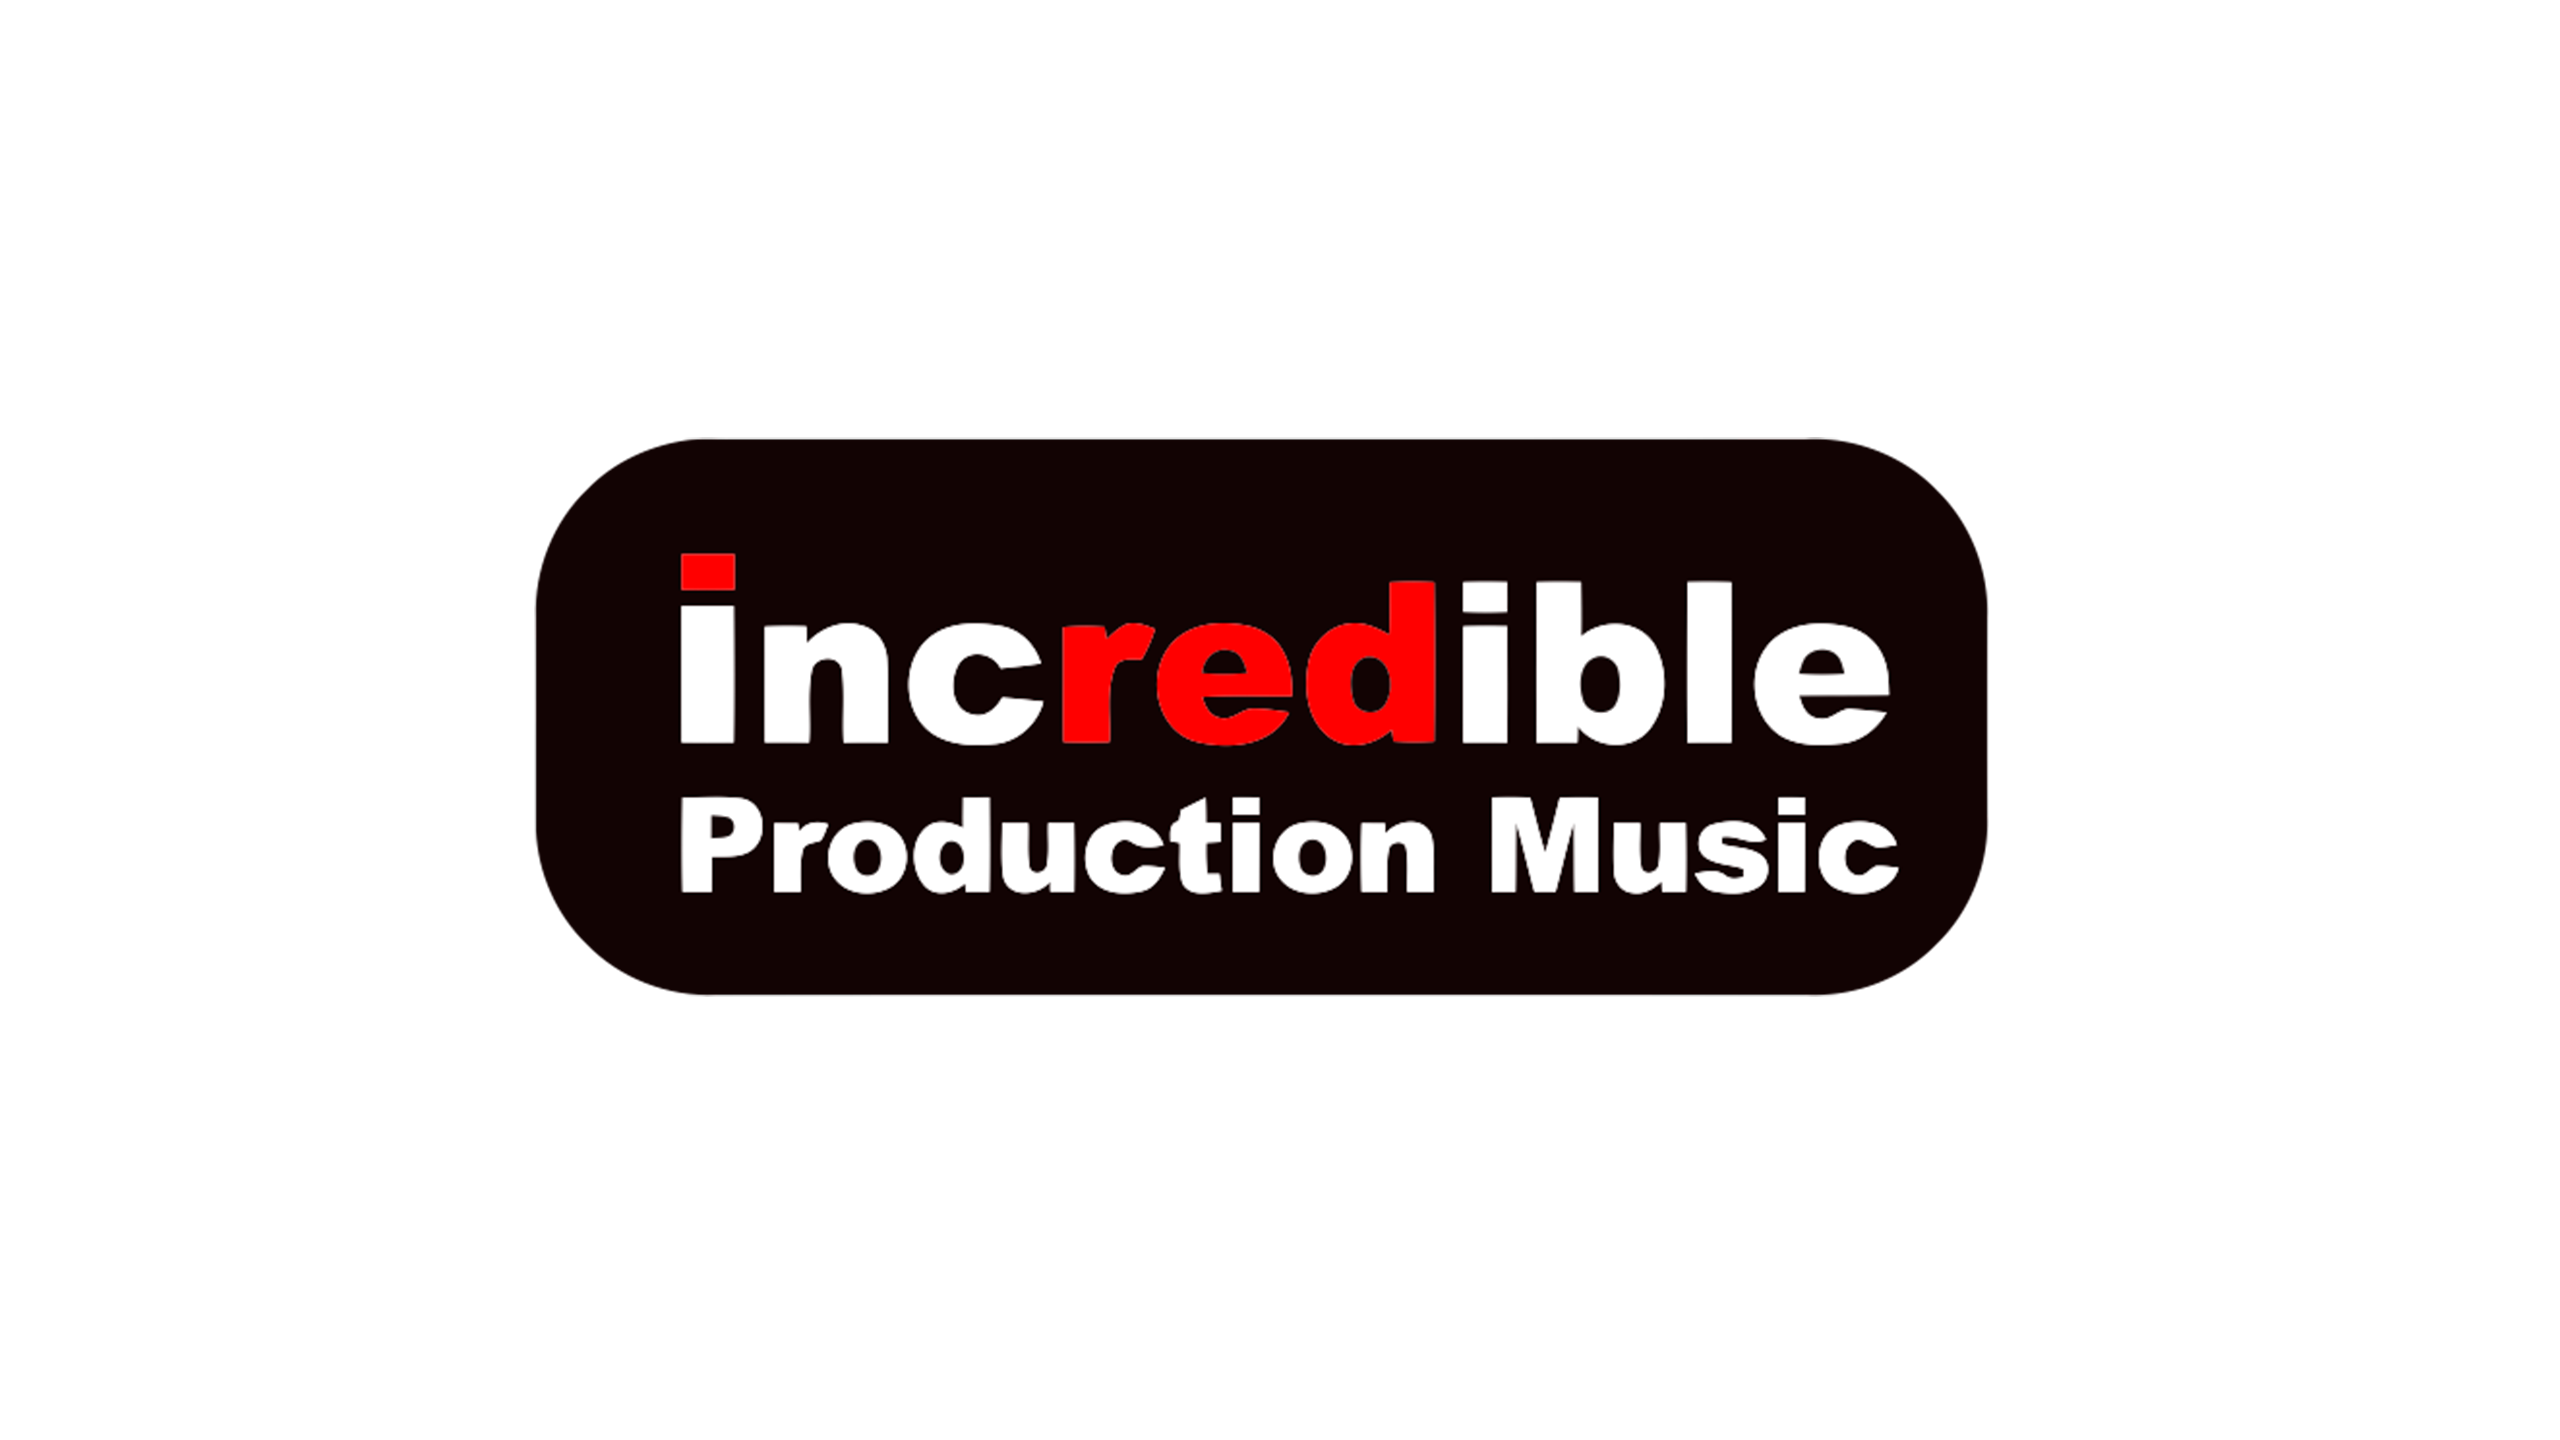 incredible Production Music logo